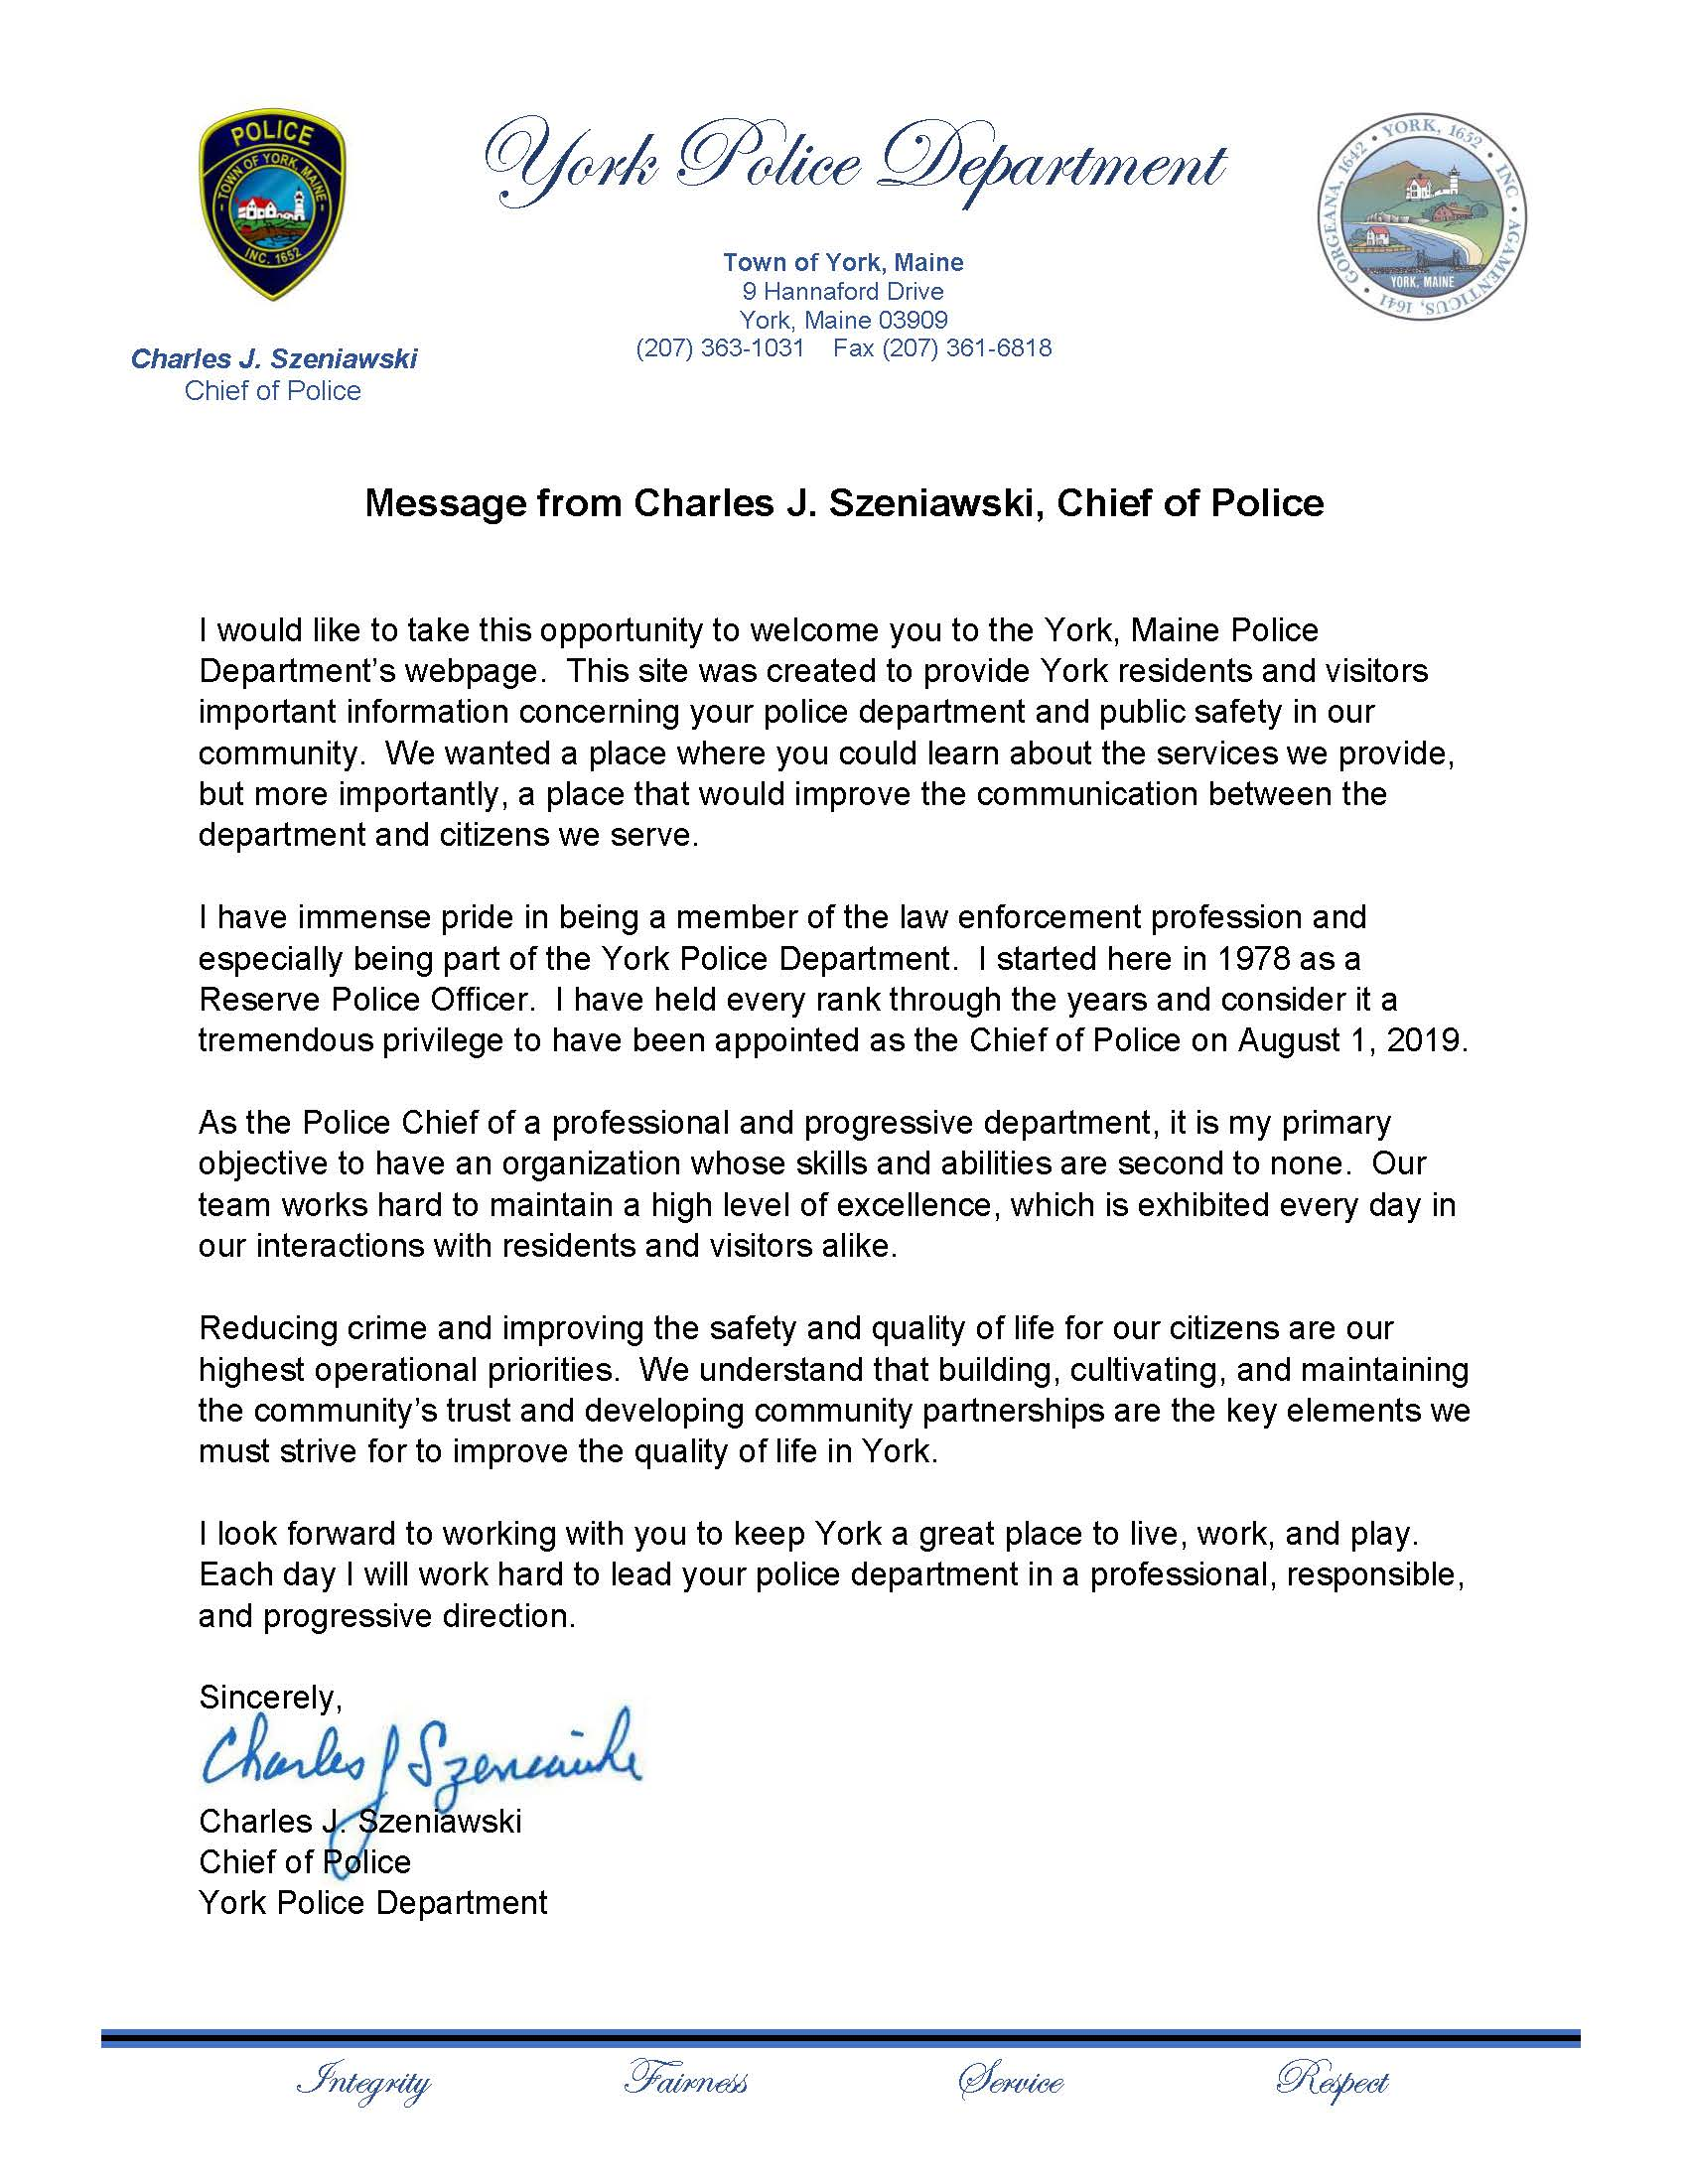 Message from the Chief for webpage